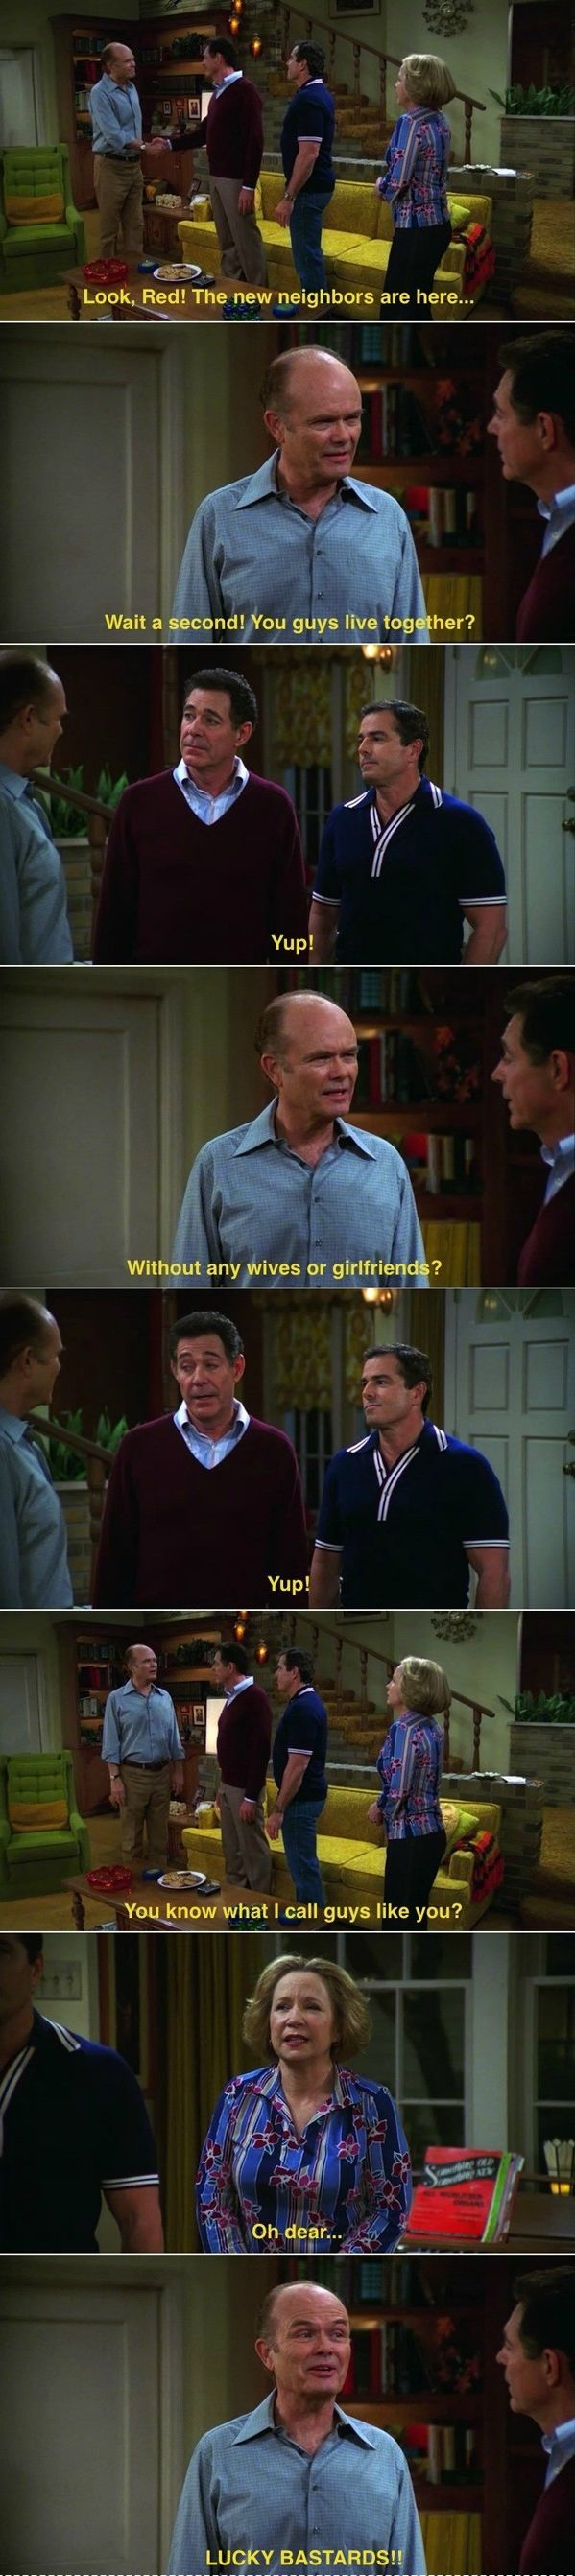 That 70's Show. Lol!!